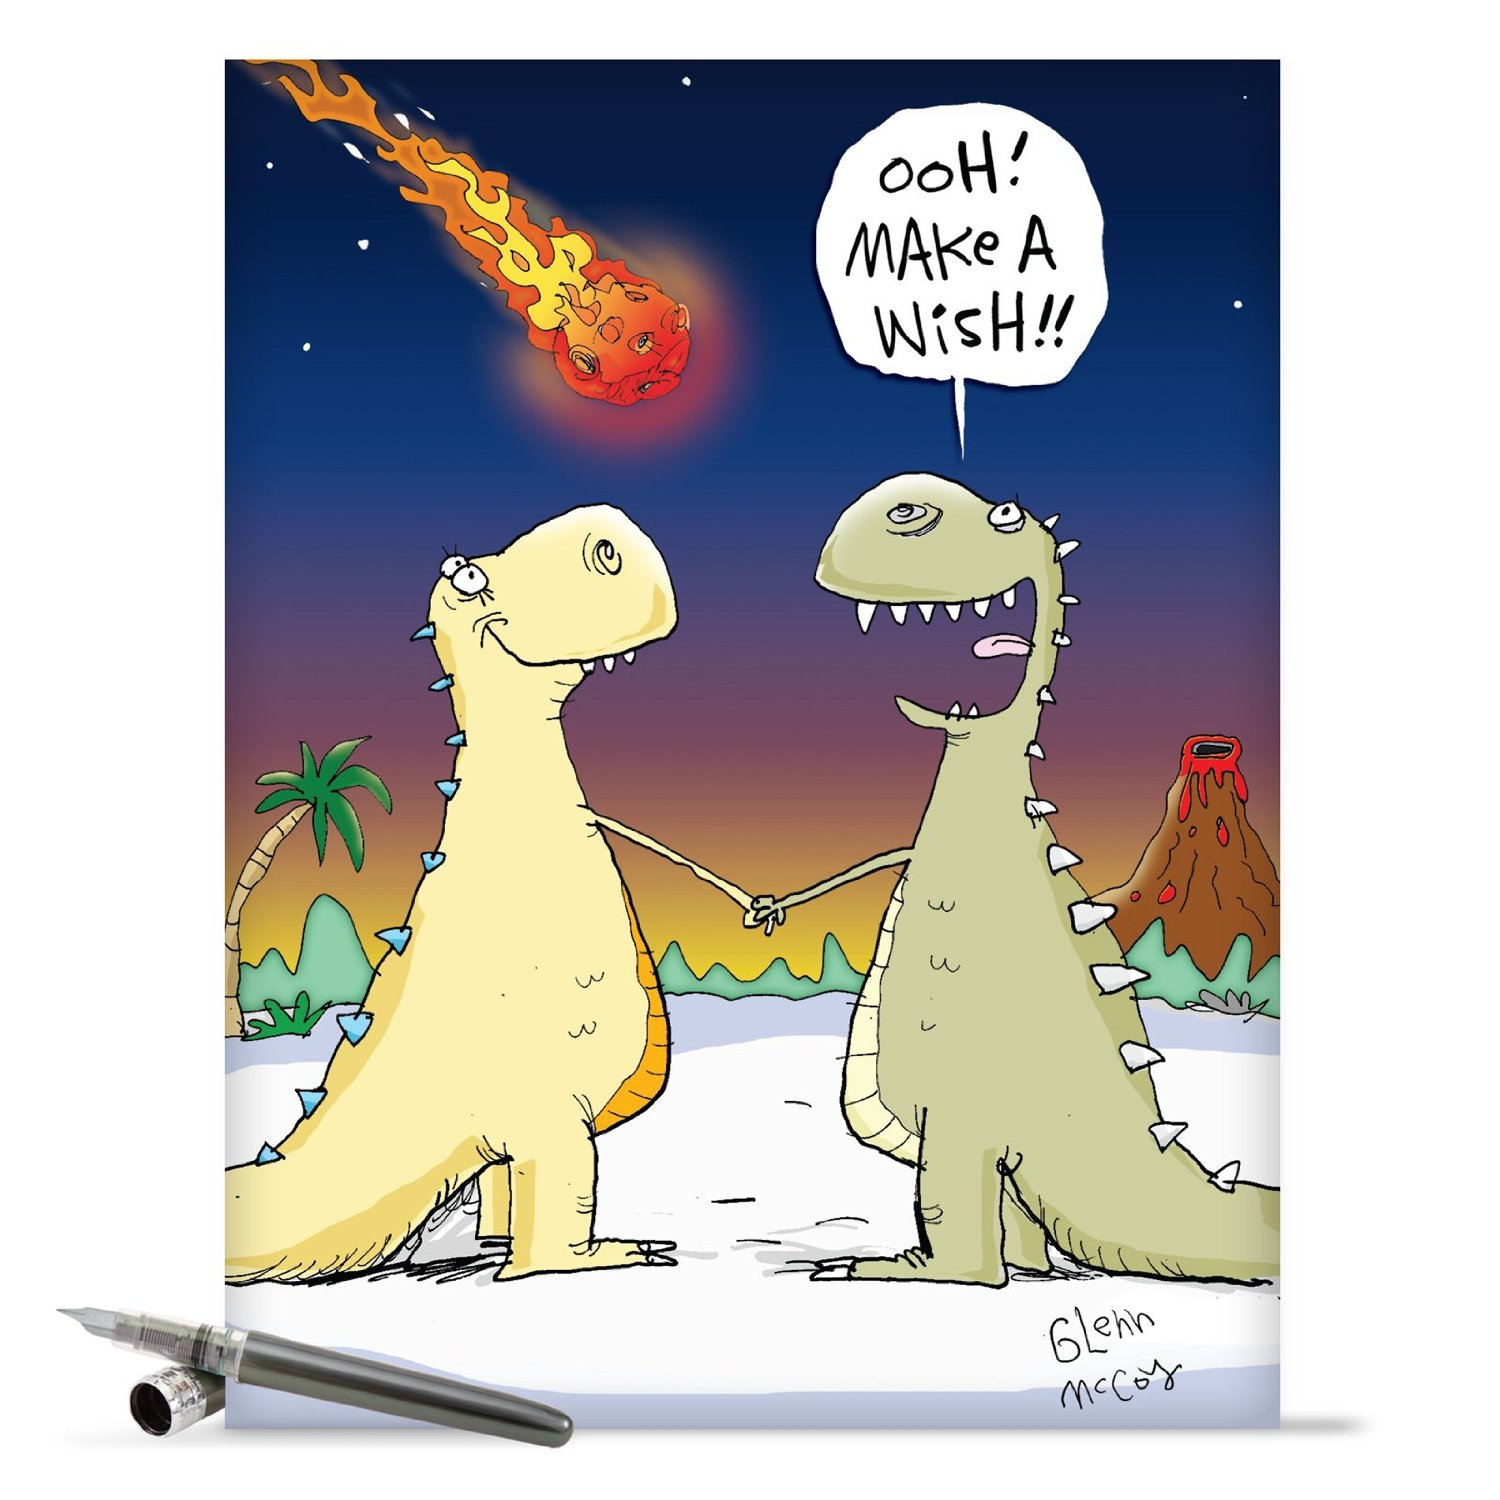 Humorous greeting cards humous greeting cards from amazon kristyandbryce Image collections